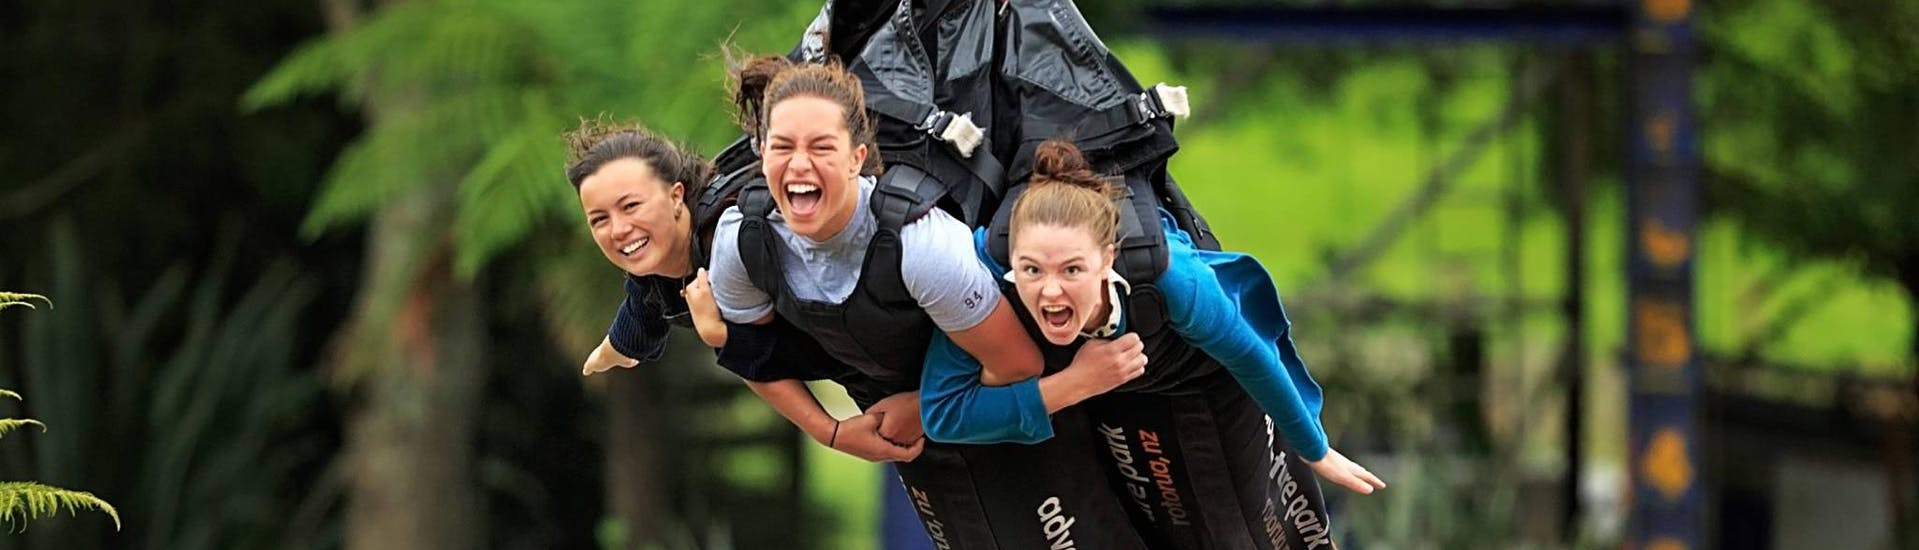 With a Multi-Ride Package with 2 or 4 Rides in Rotorua, three girls have chosen to try the thrilling swoop located in the Velocity Valley Rotorua Adventure Park.